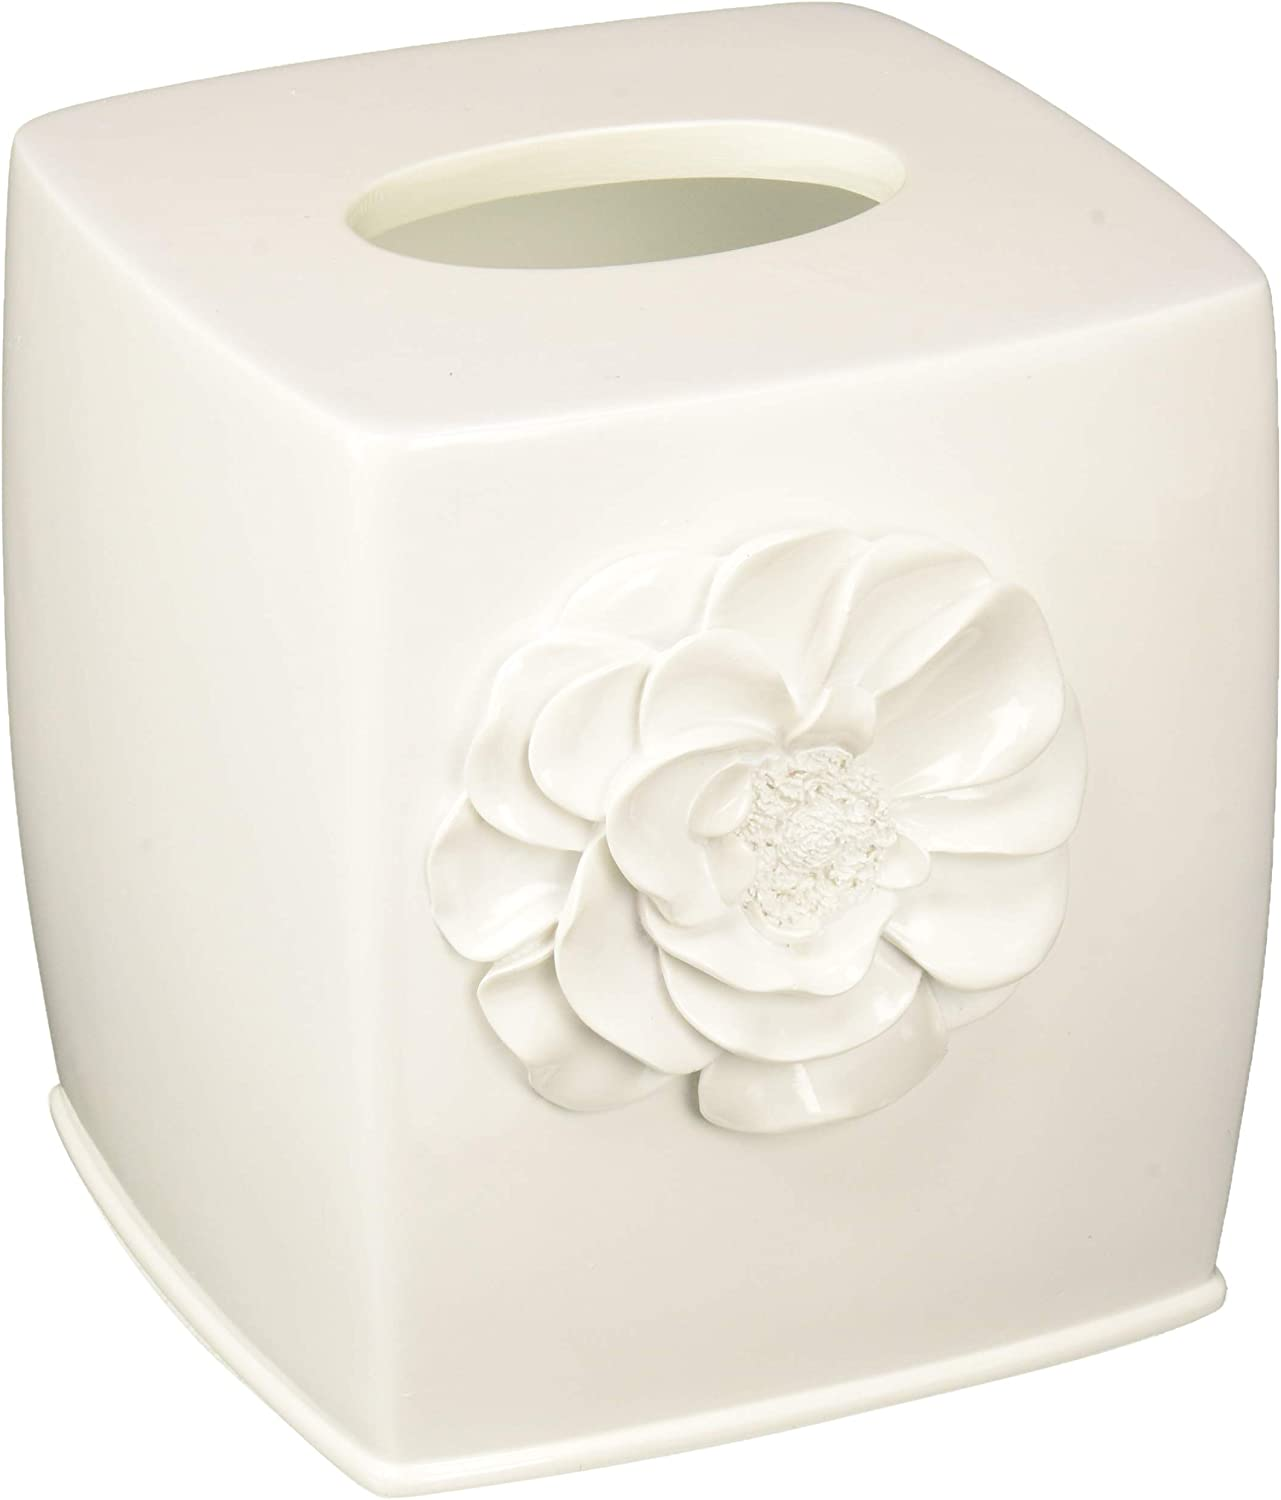 SKL Home by Saturday Knight Ltd. Keila Rose Tissue Box Cover, White